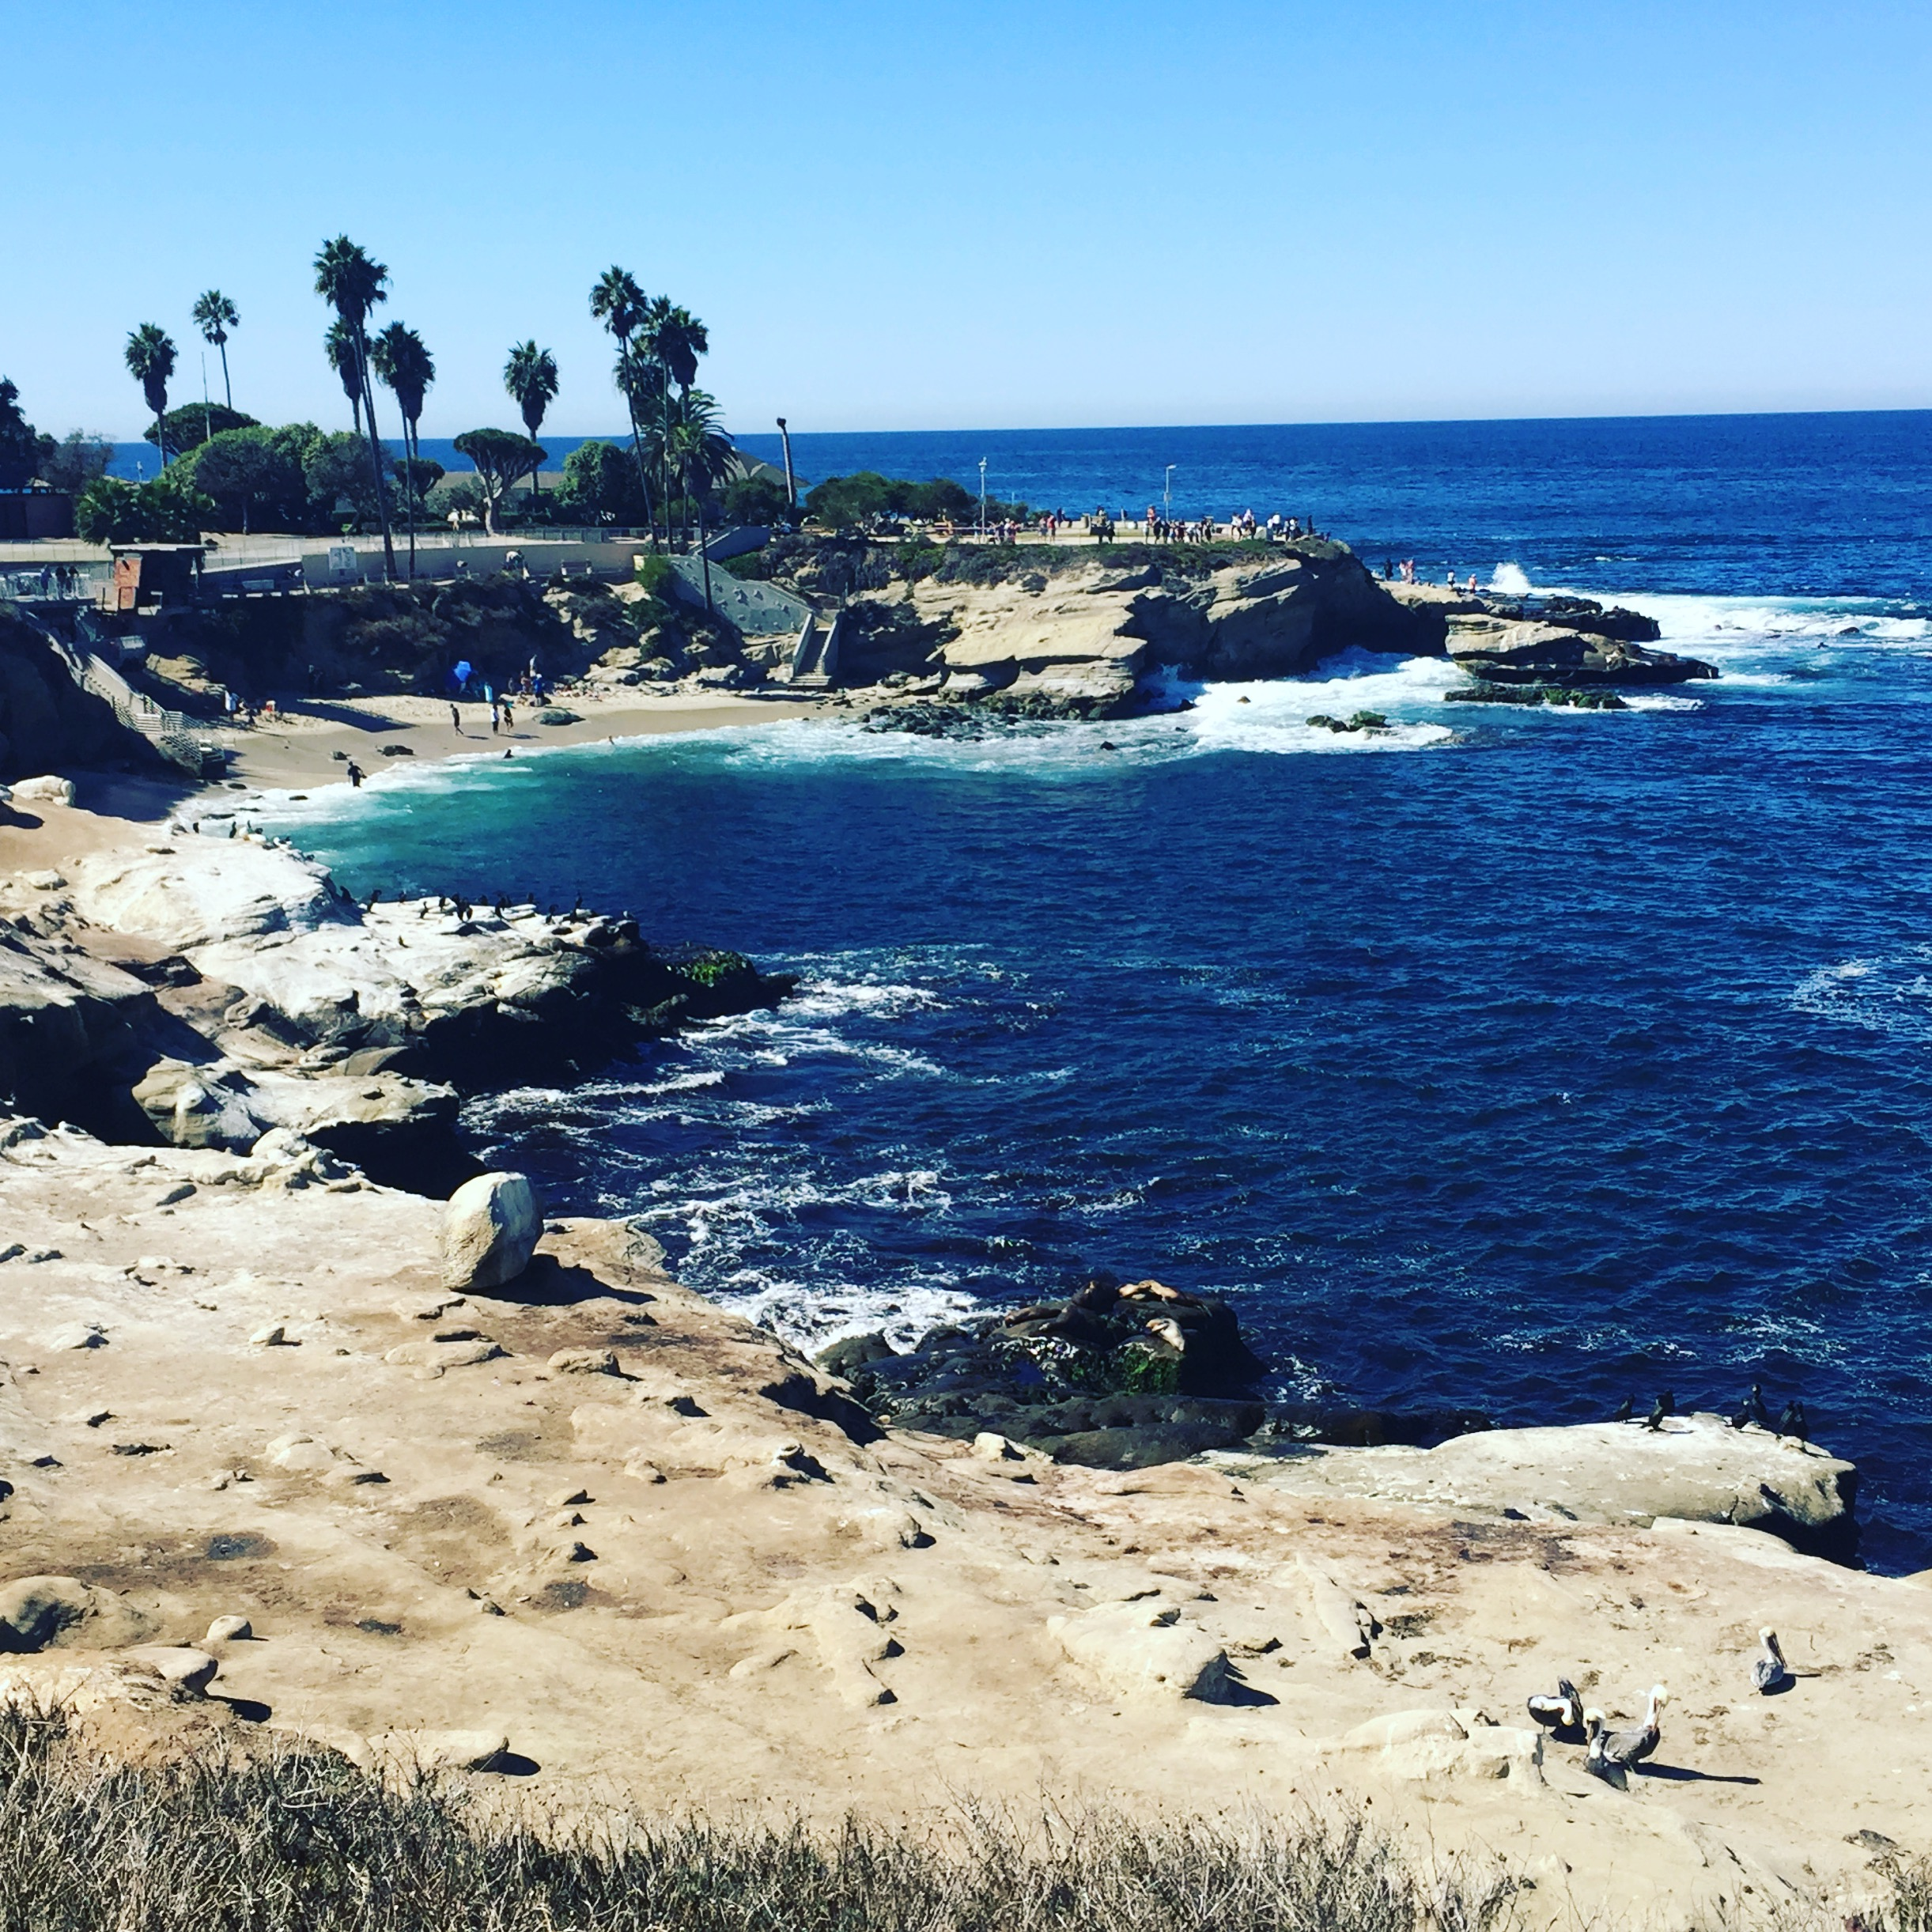 La Jolla Cove, right down the road from The Grounds.